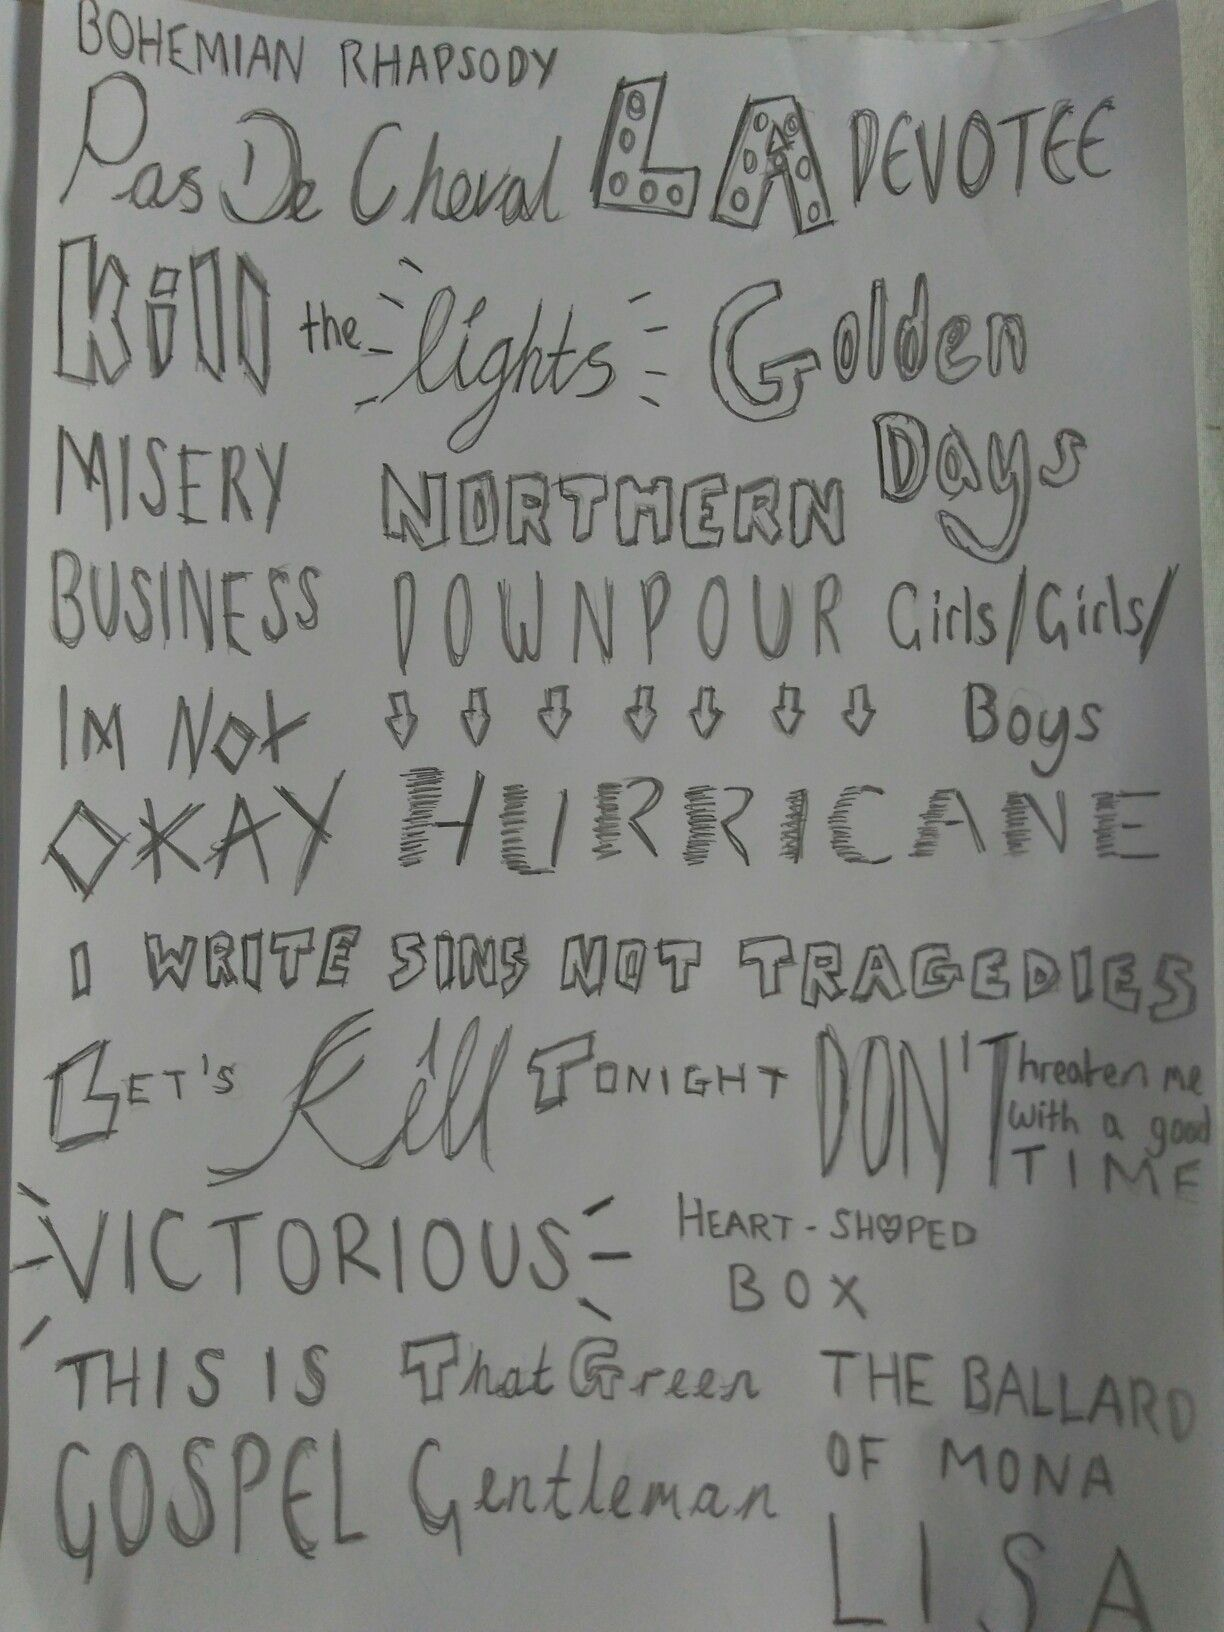 Song Titles from Panic! At The Disco, Set It Off, My